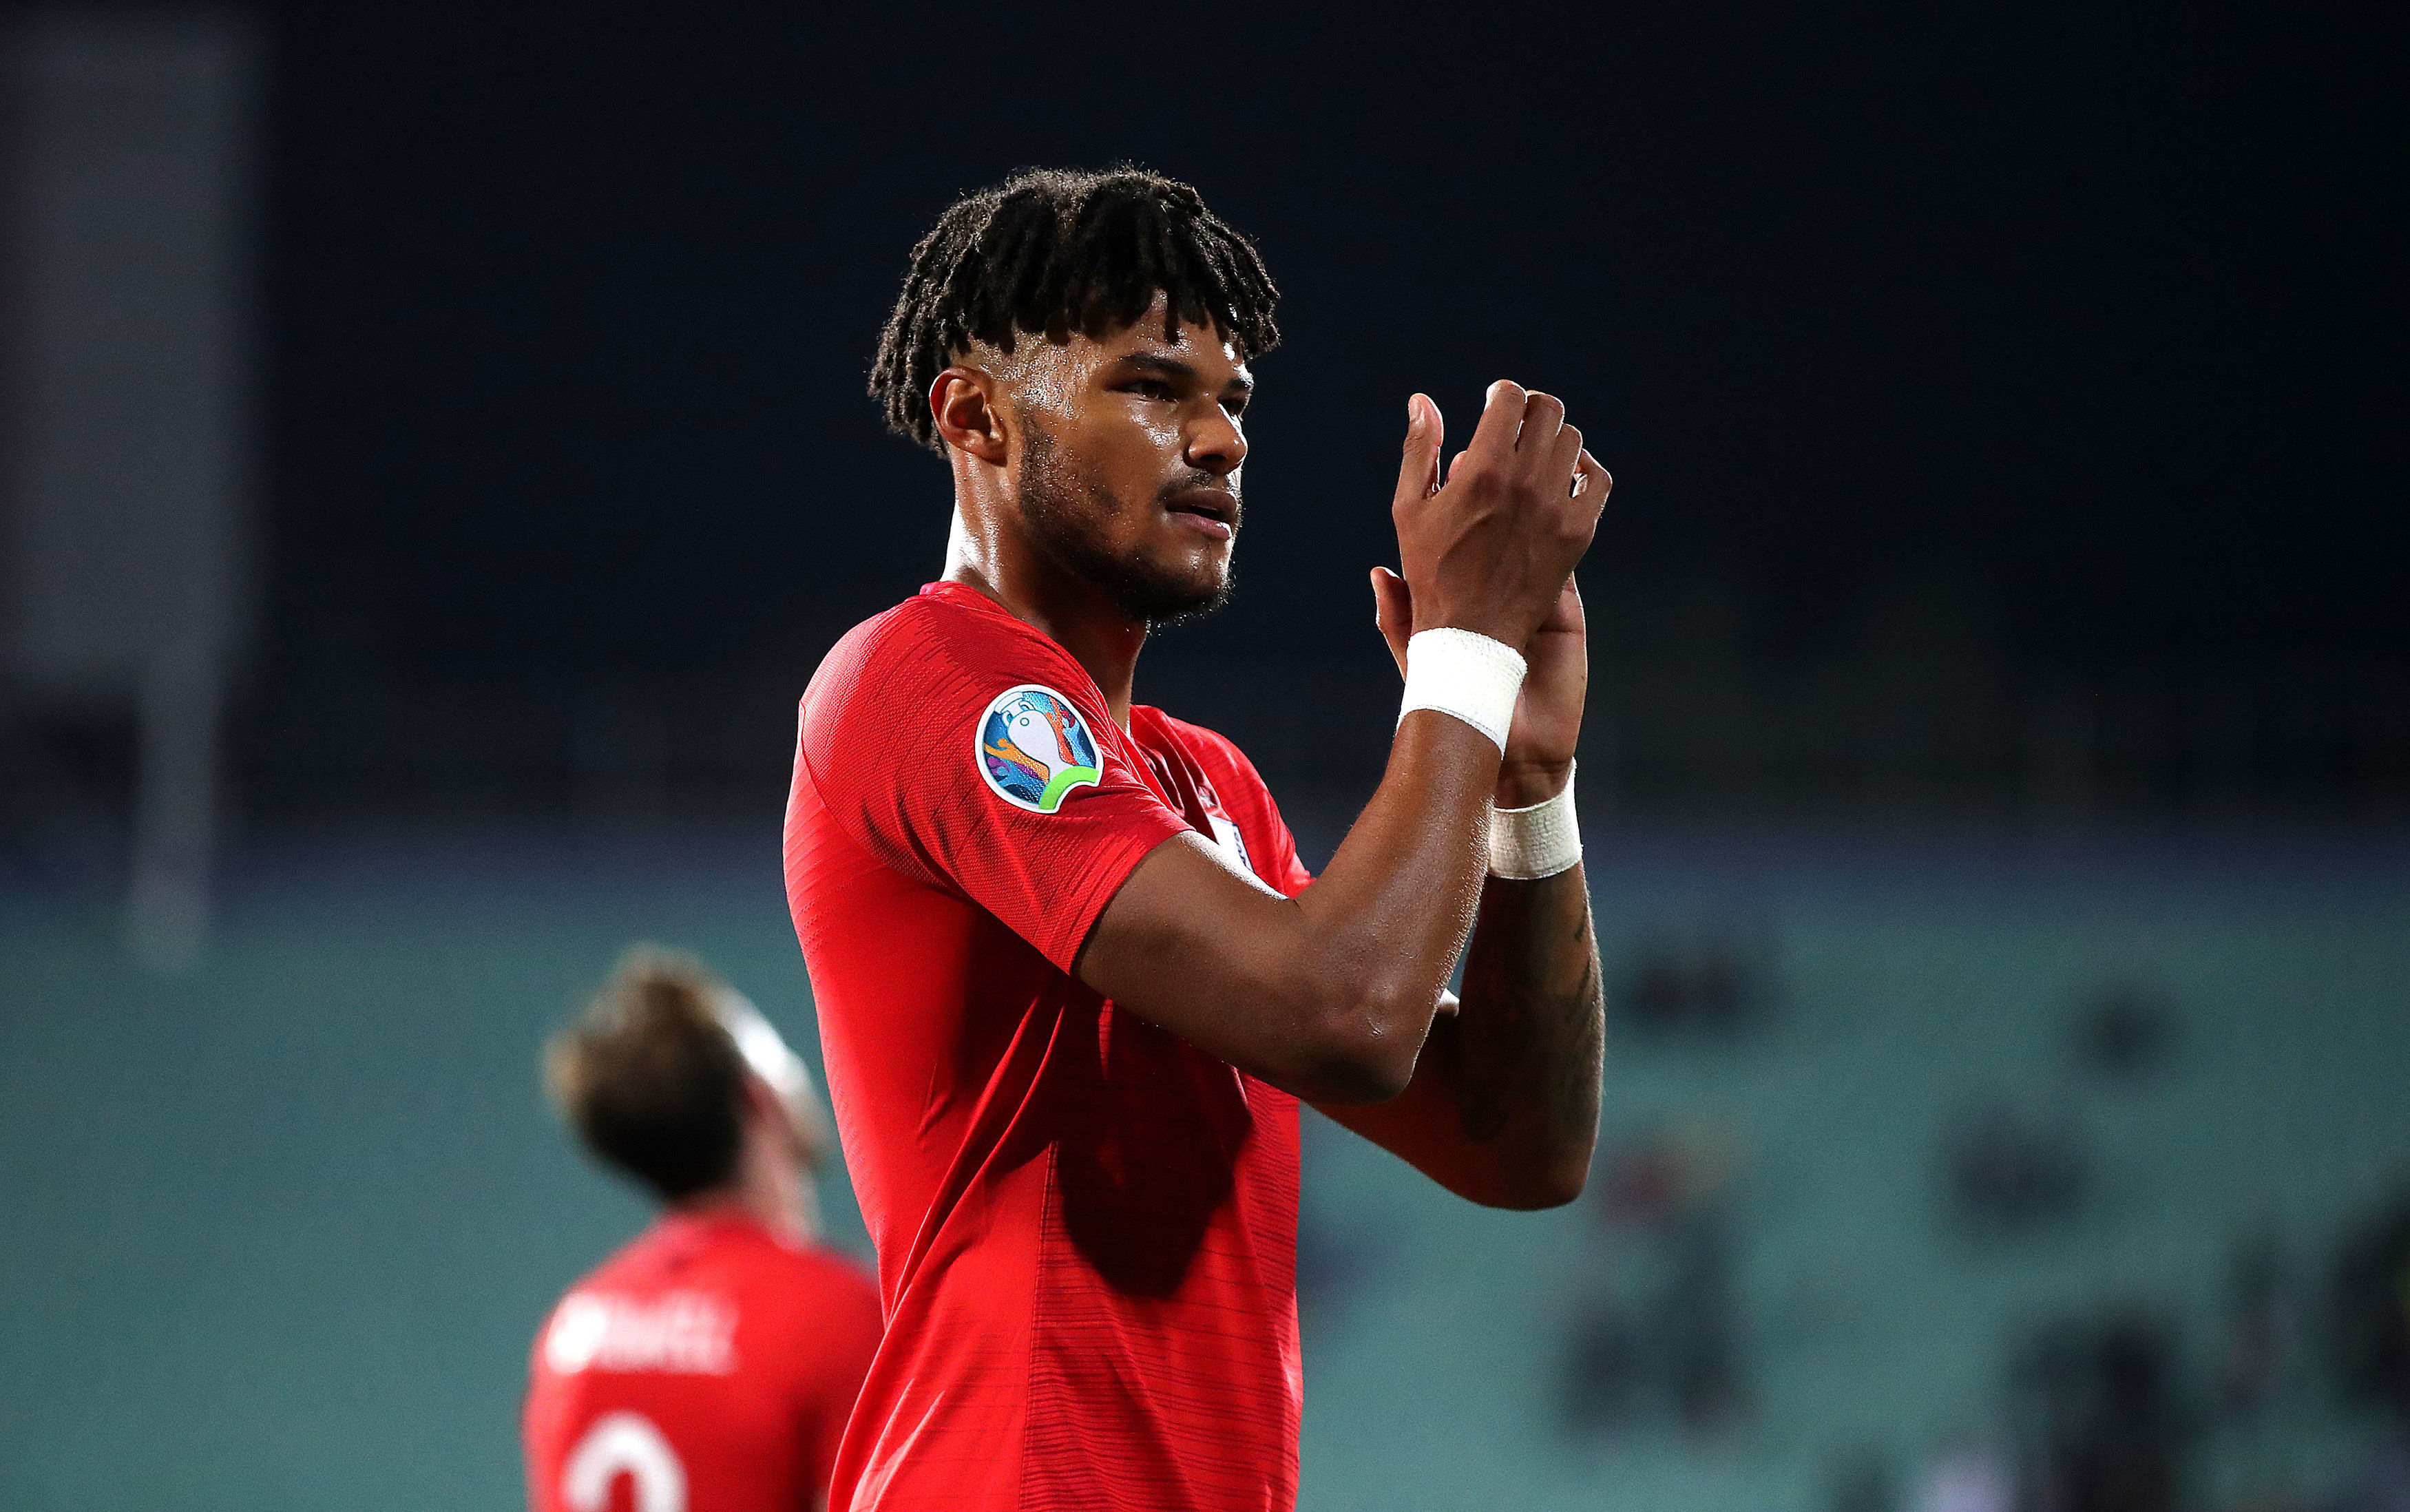 Mings playing for England